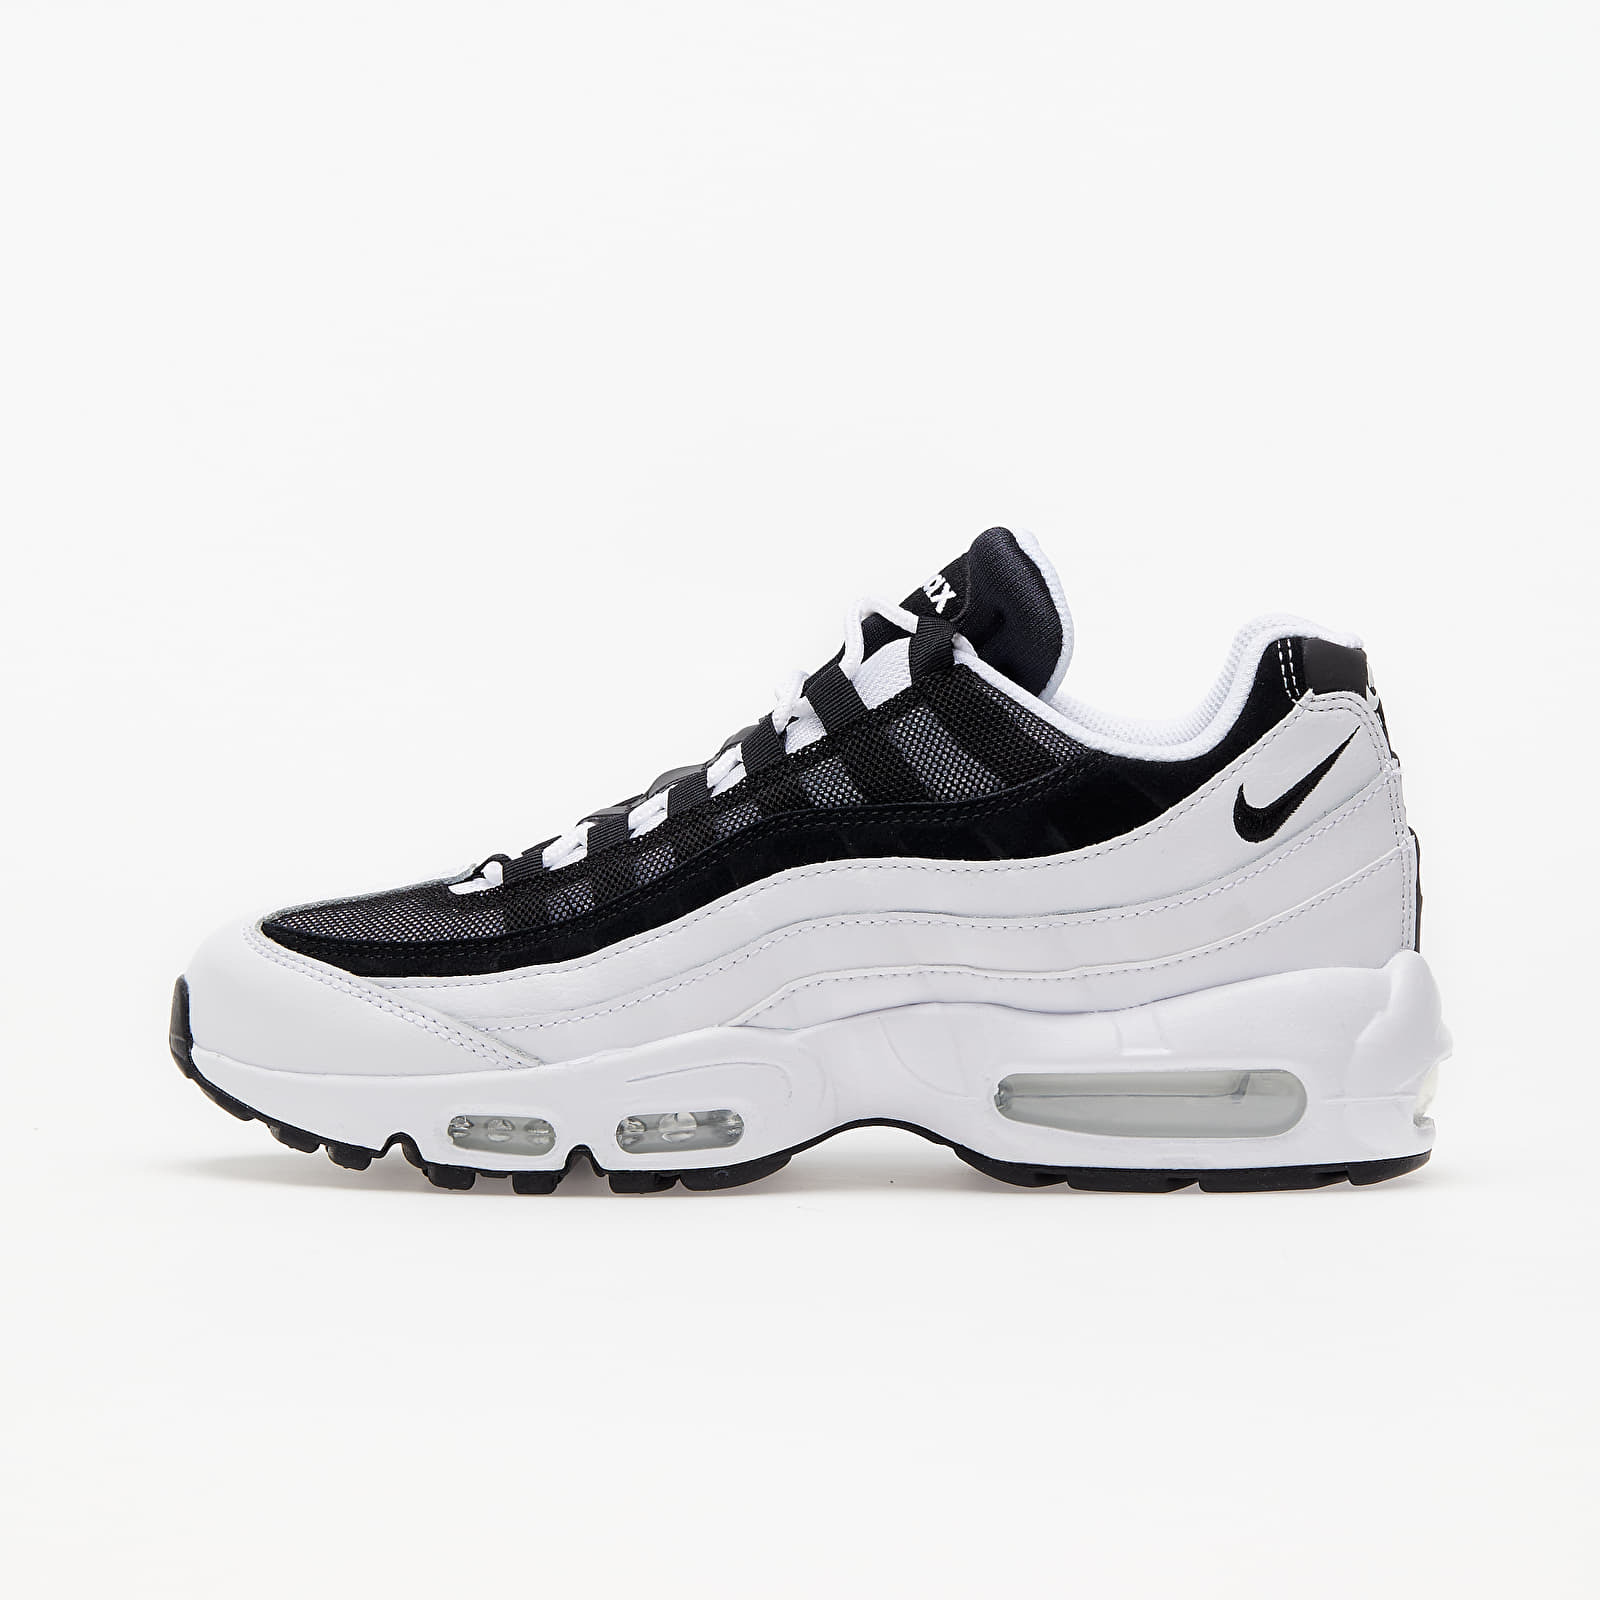 Nike Air Max 95 Essential White/ Black EUR 42